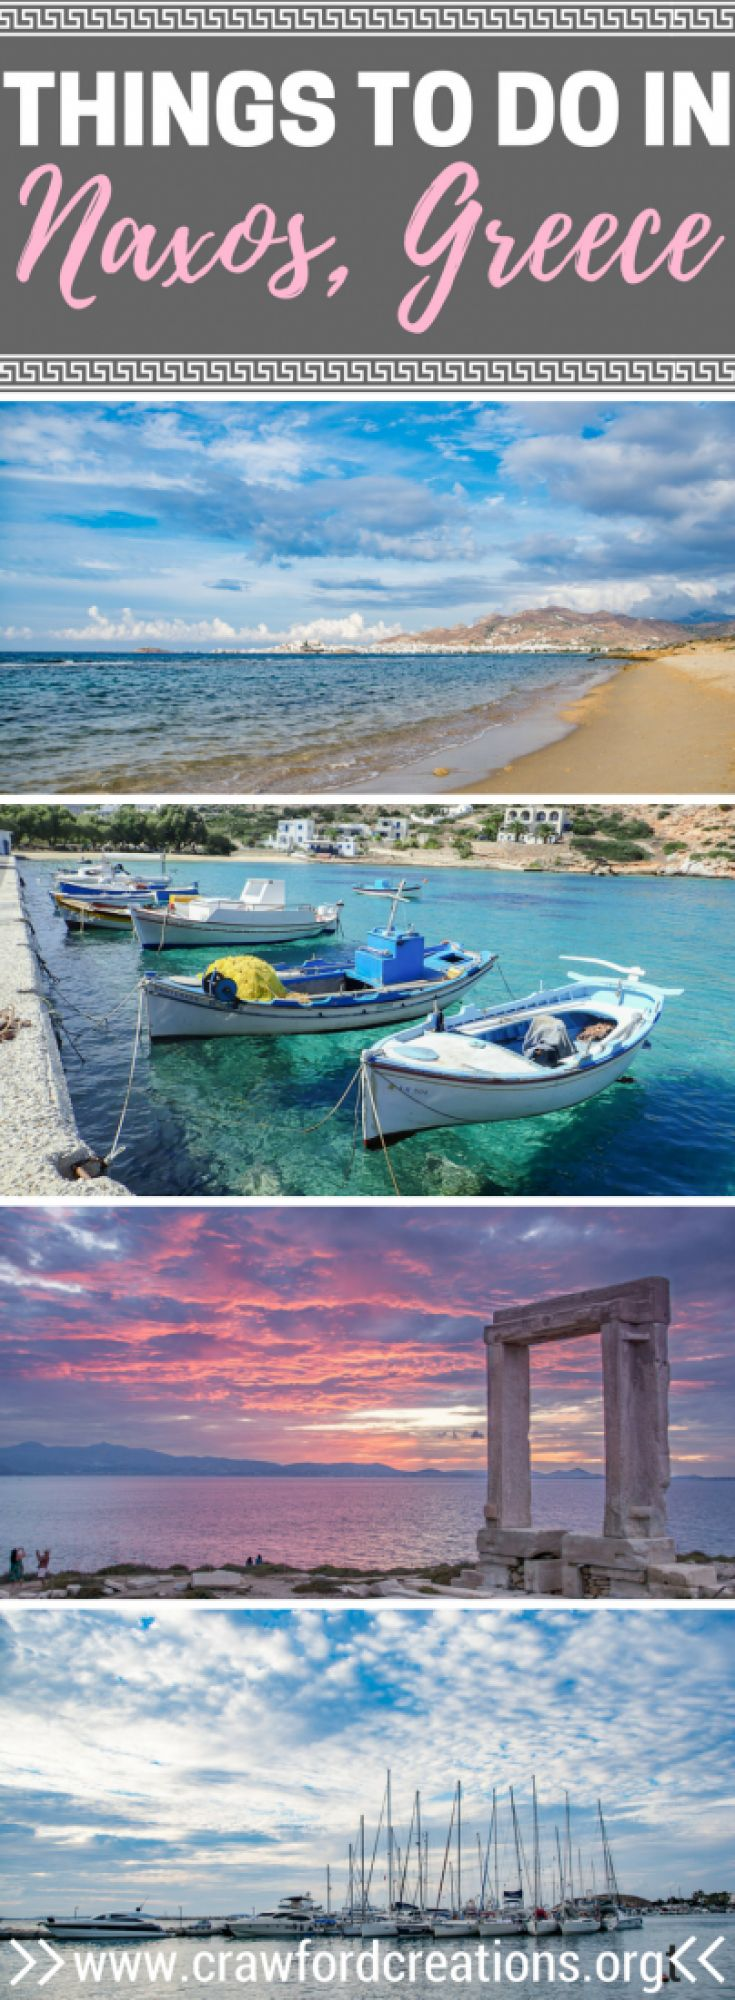 Naxos Island | Greek Islands | Greece Travel | Sailing | Sailing With Dolphins | Greece | Island Vacations | Island Travel | Naxos Travel | Things To Do Naxos | Naxos Sailing